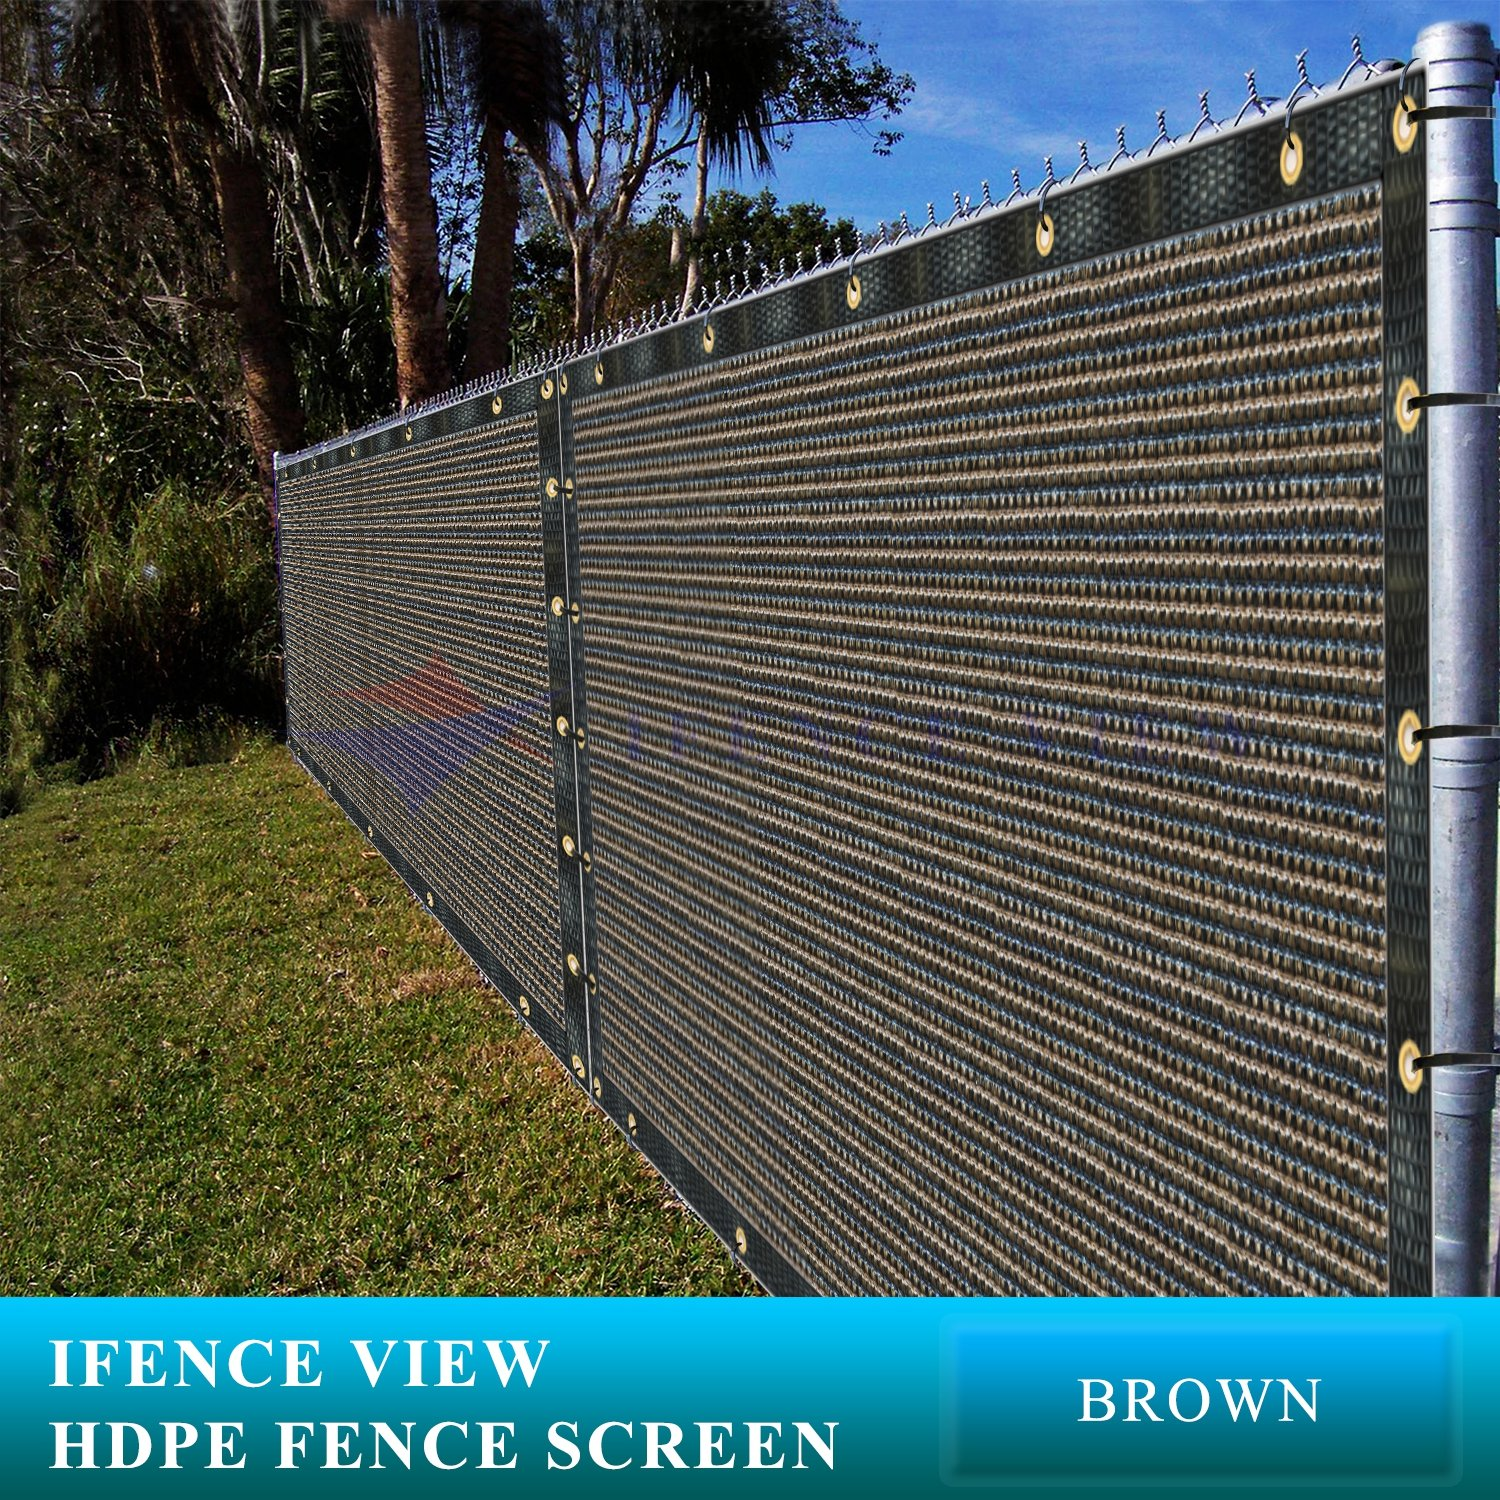 Ifenceview 5 x3 to 5 x50 Brown Shade Cloth Fence Privacy Screen Fabric Mesh Net for Construction Site, Yard, Driveway, Garden, Railing, Canopy, Awning 160 GSM UV Protection 5 X 10